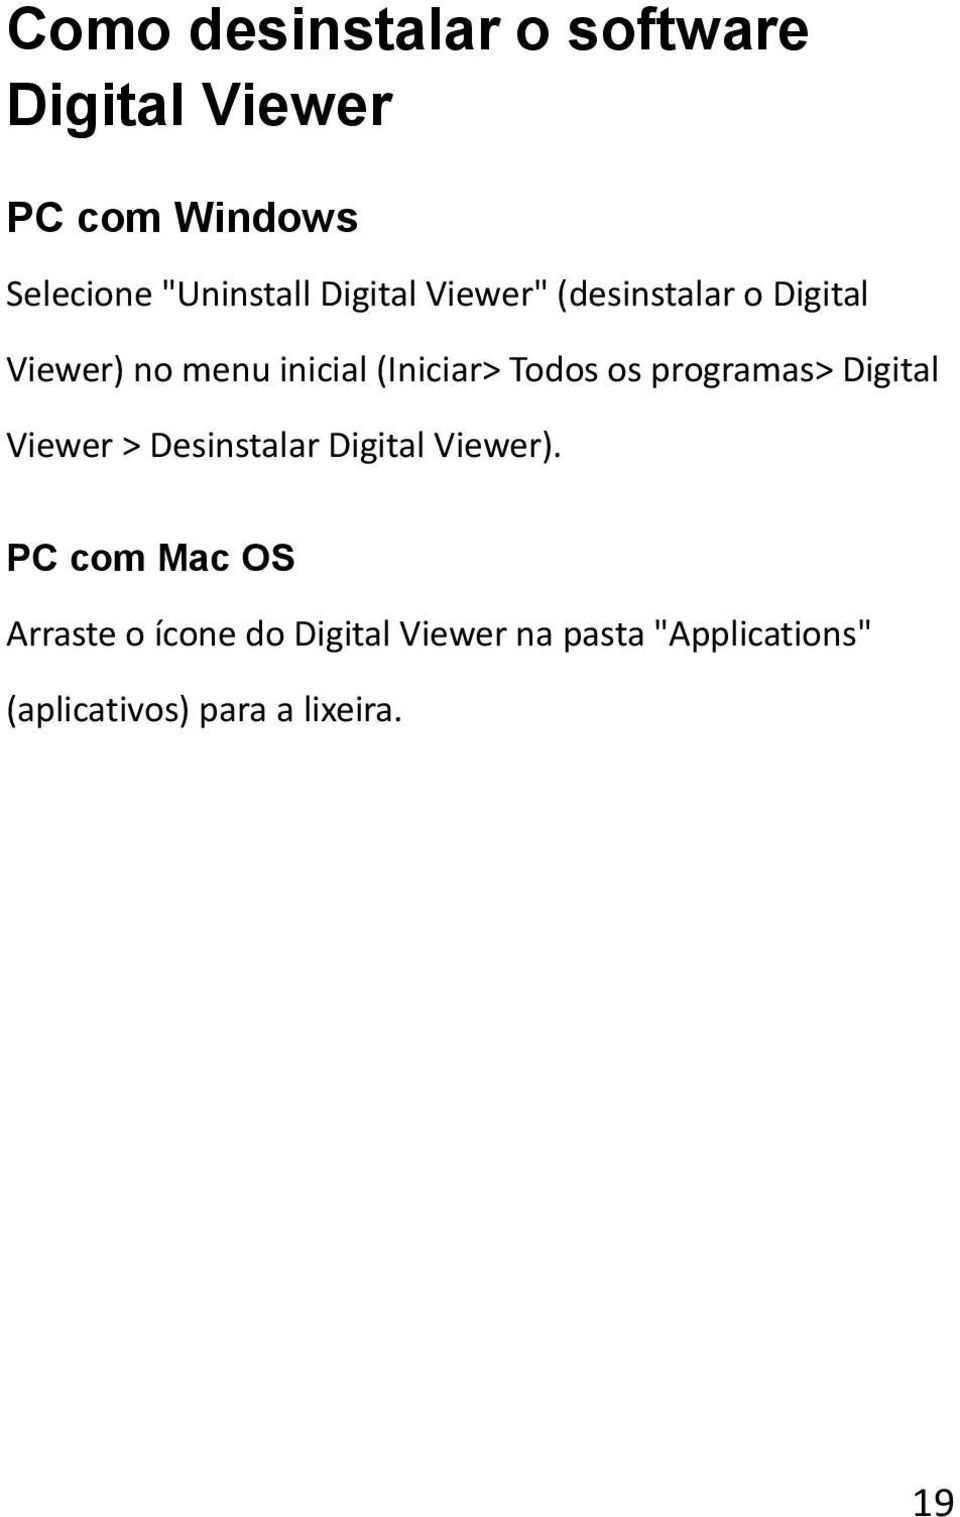 os programas> Digital Viewer > Desinstalar Digital Viewer).